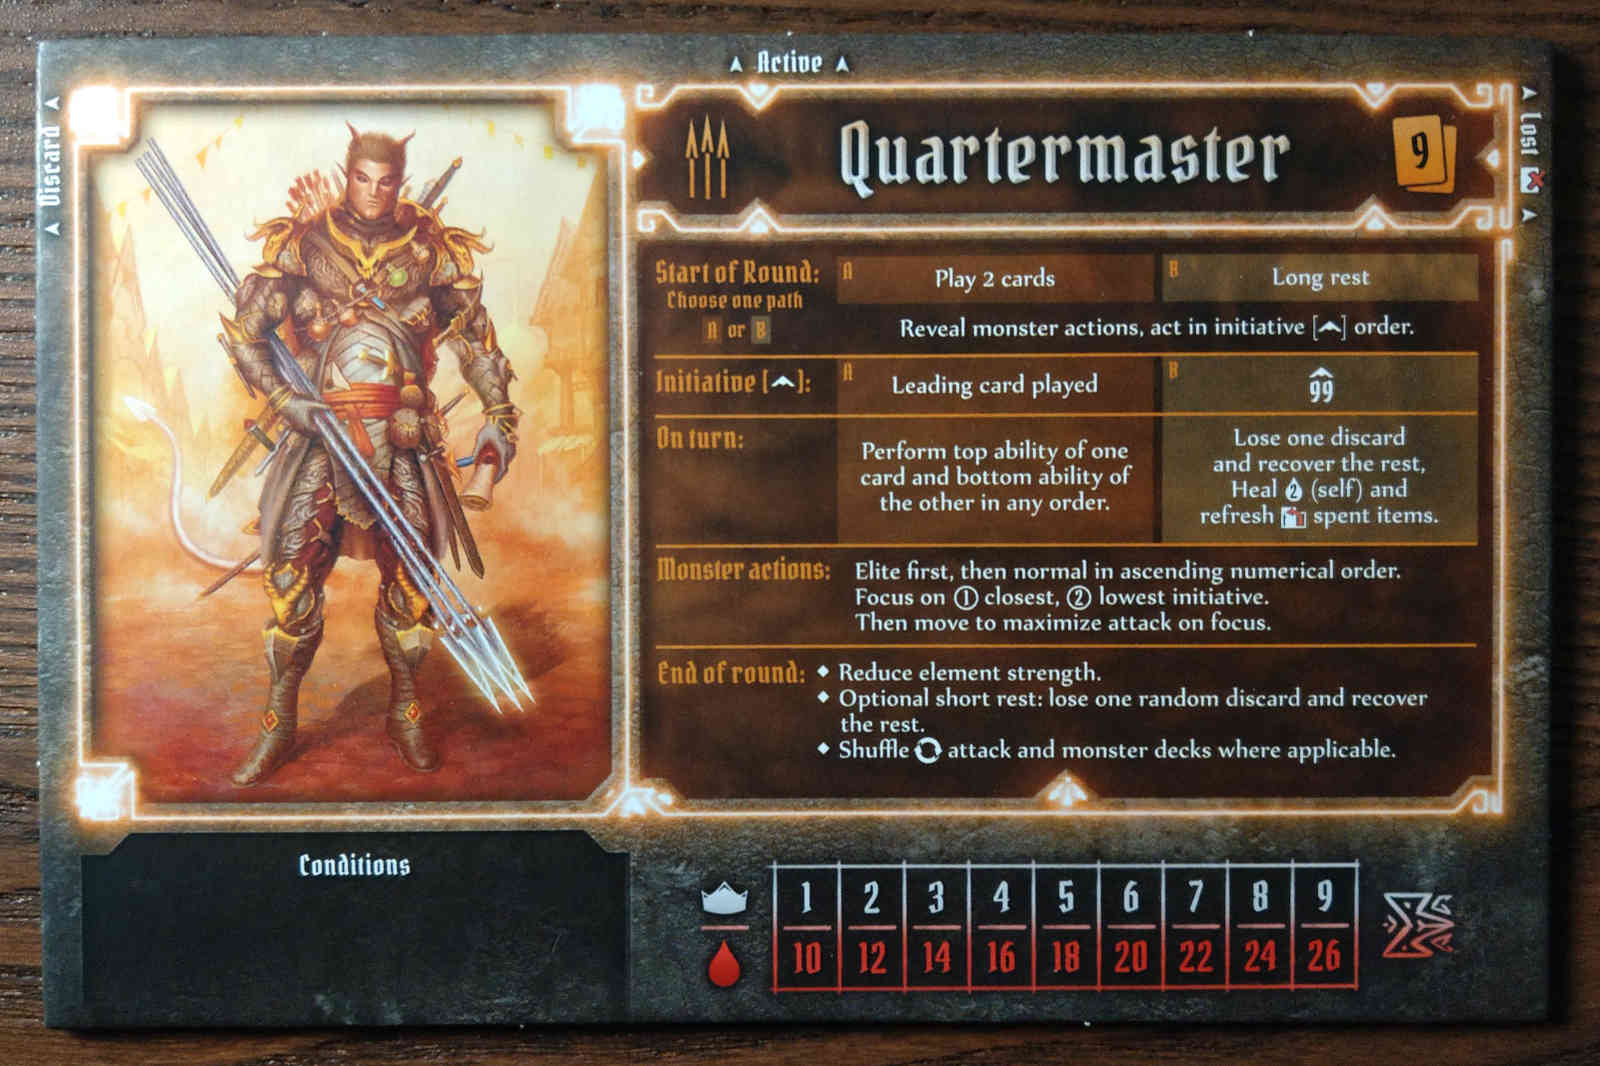 Gloomhaven Quartermaster Class board showing hit points and experience by level